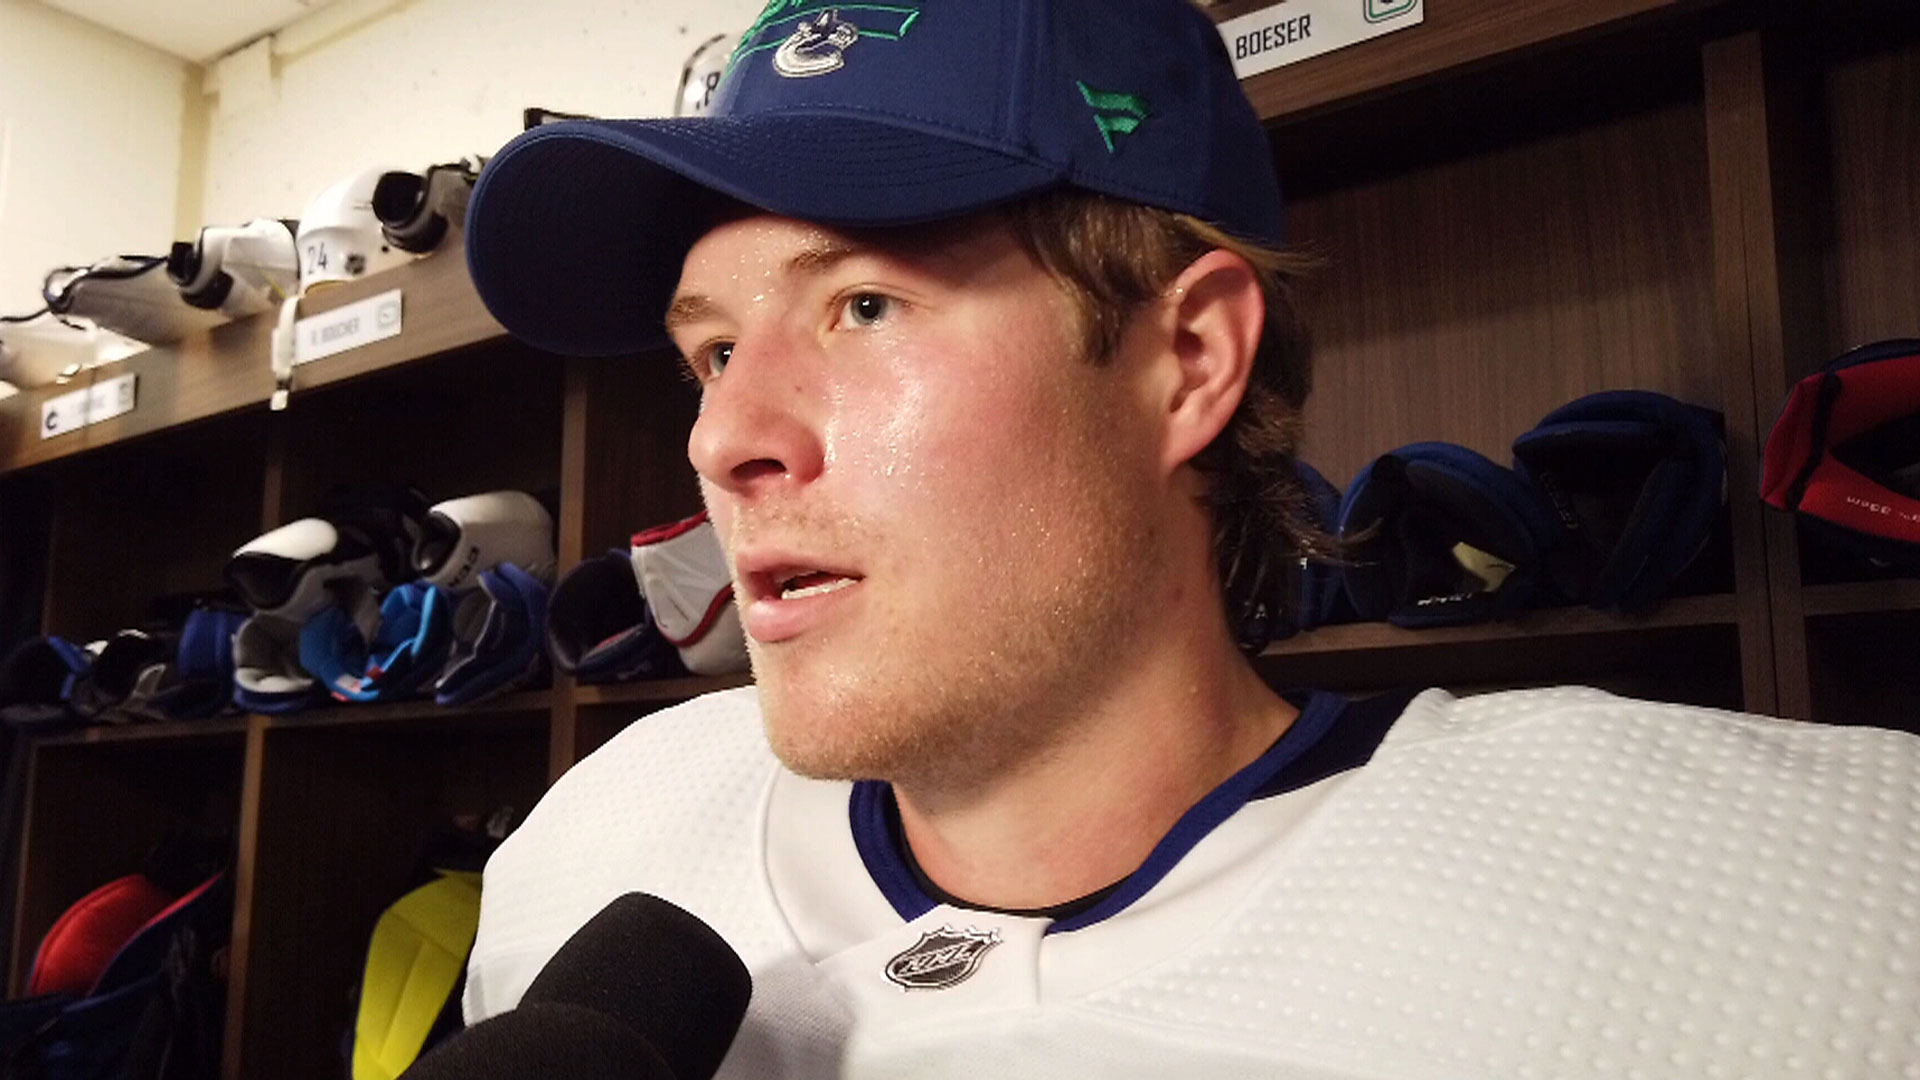 Boeser says he's good to go, wants to get his confidence back